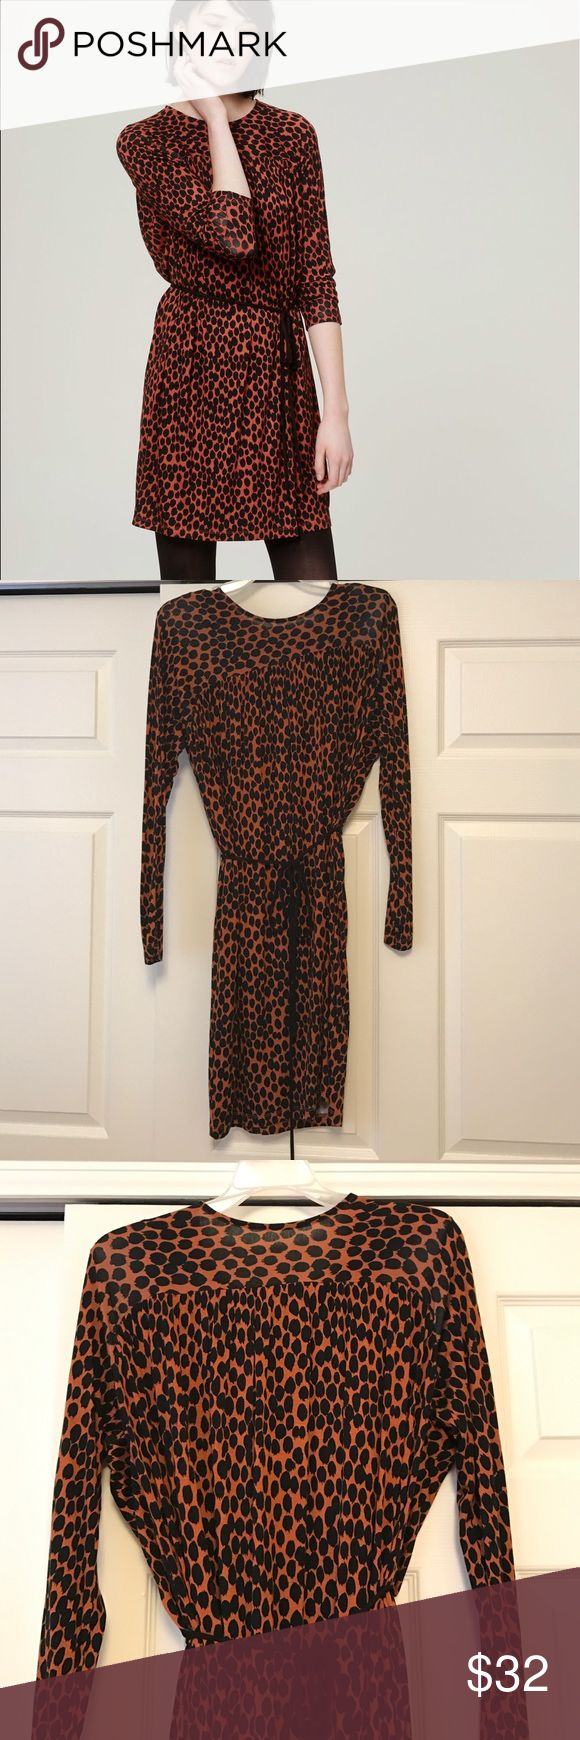 Loft animal print long sleeved dress Tie waist. Perfect condition. Great for work or play! 🐆 LOFT Dresses